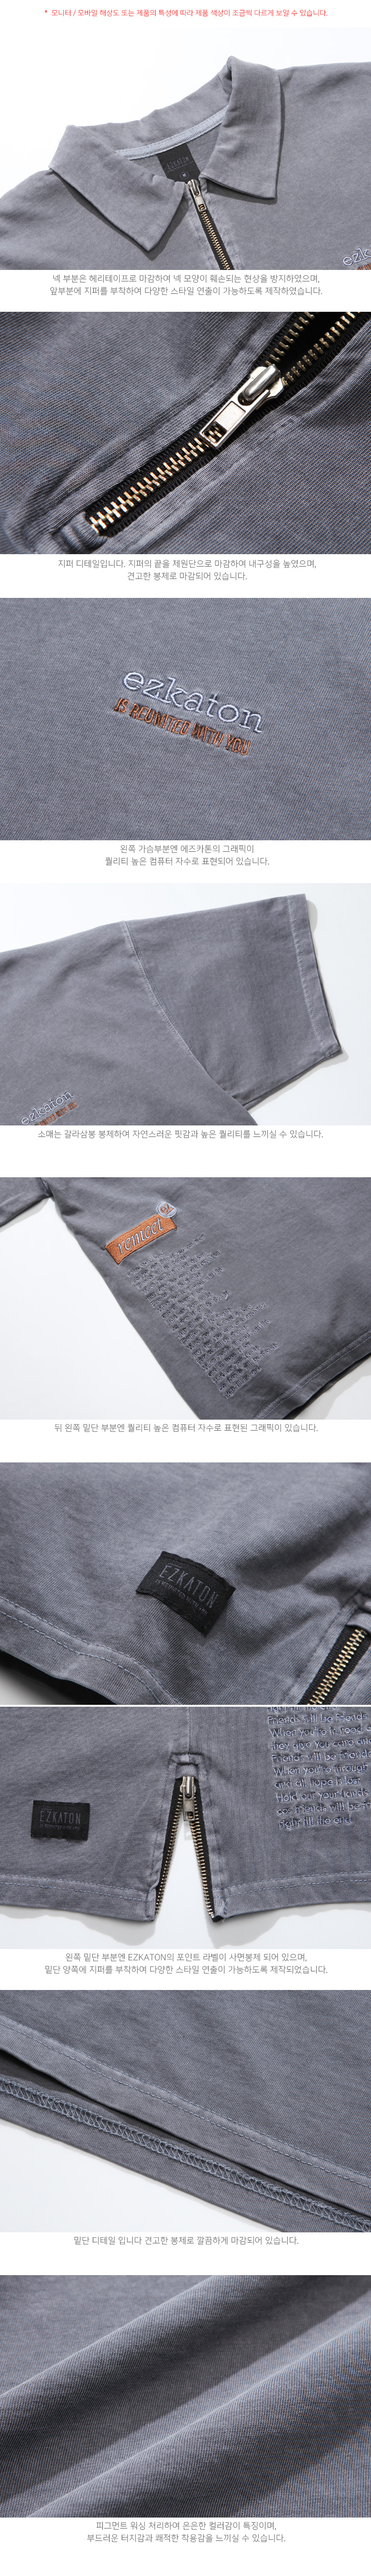 20190426_ez_washingslider_detail_gray_ym_02.jpg